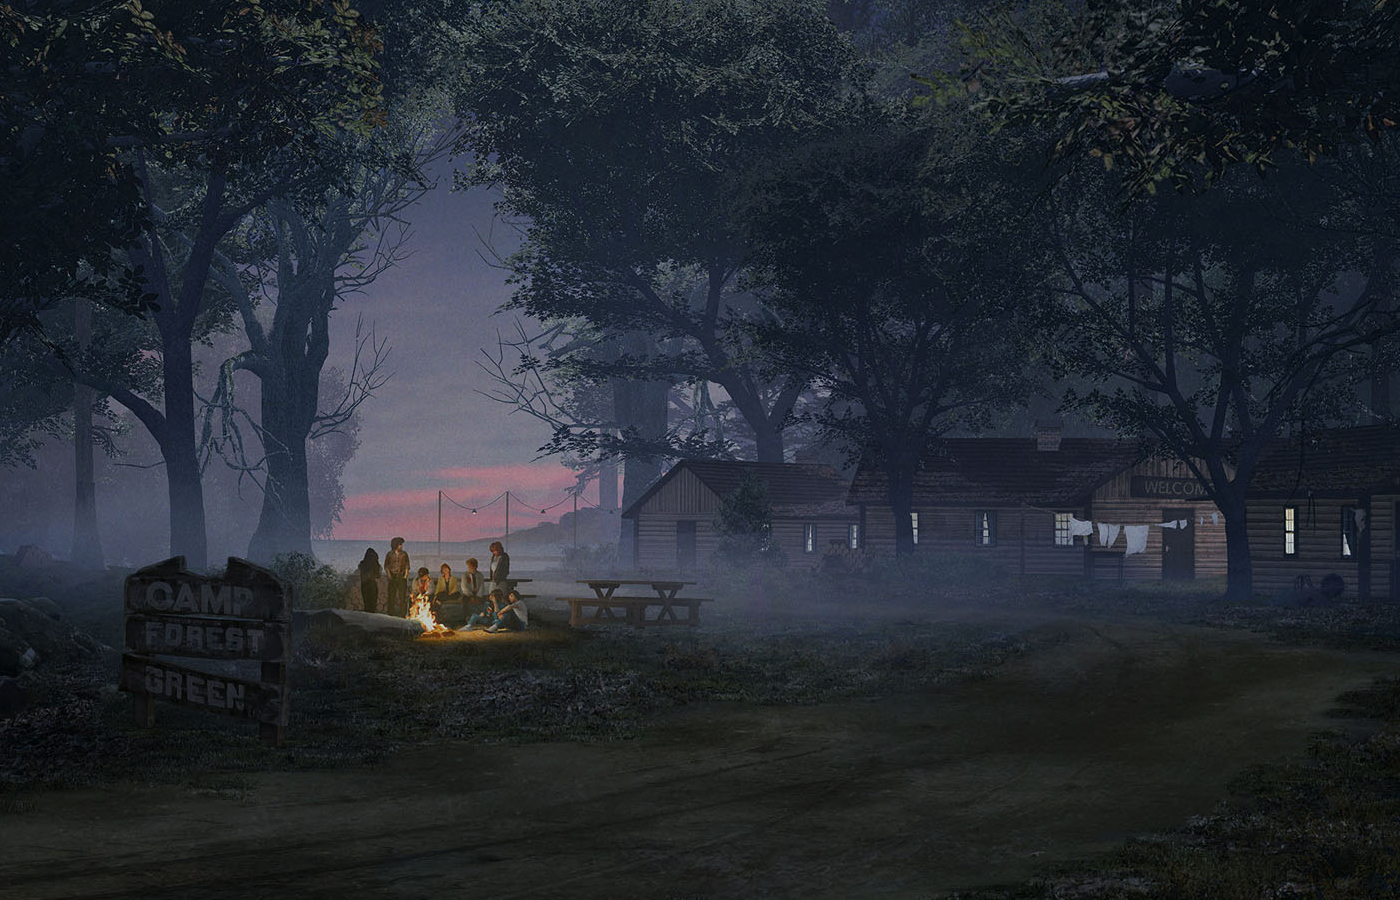 Friday The 13th The Game Wallpaper: Friday The 13th: The Game Narrative Campaign Coming With